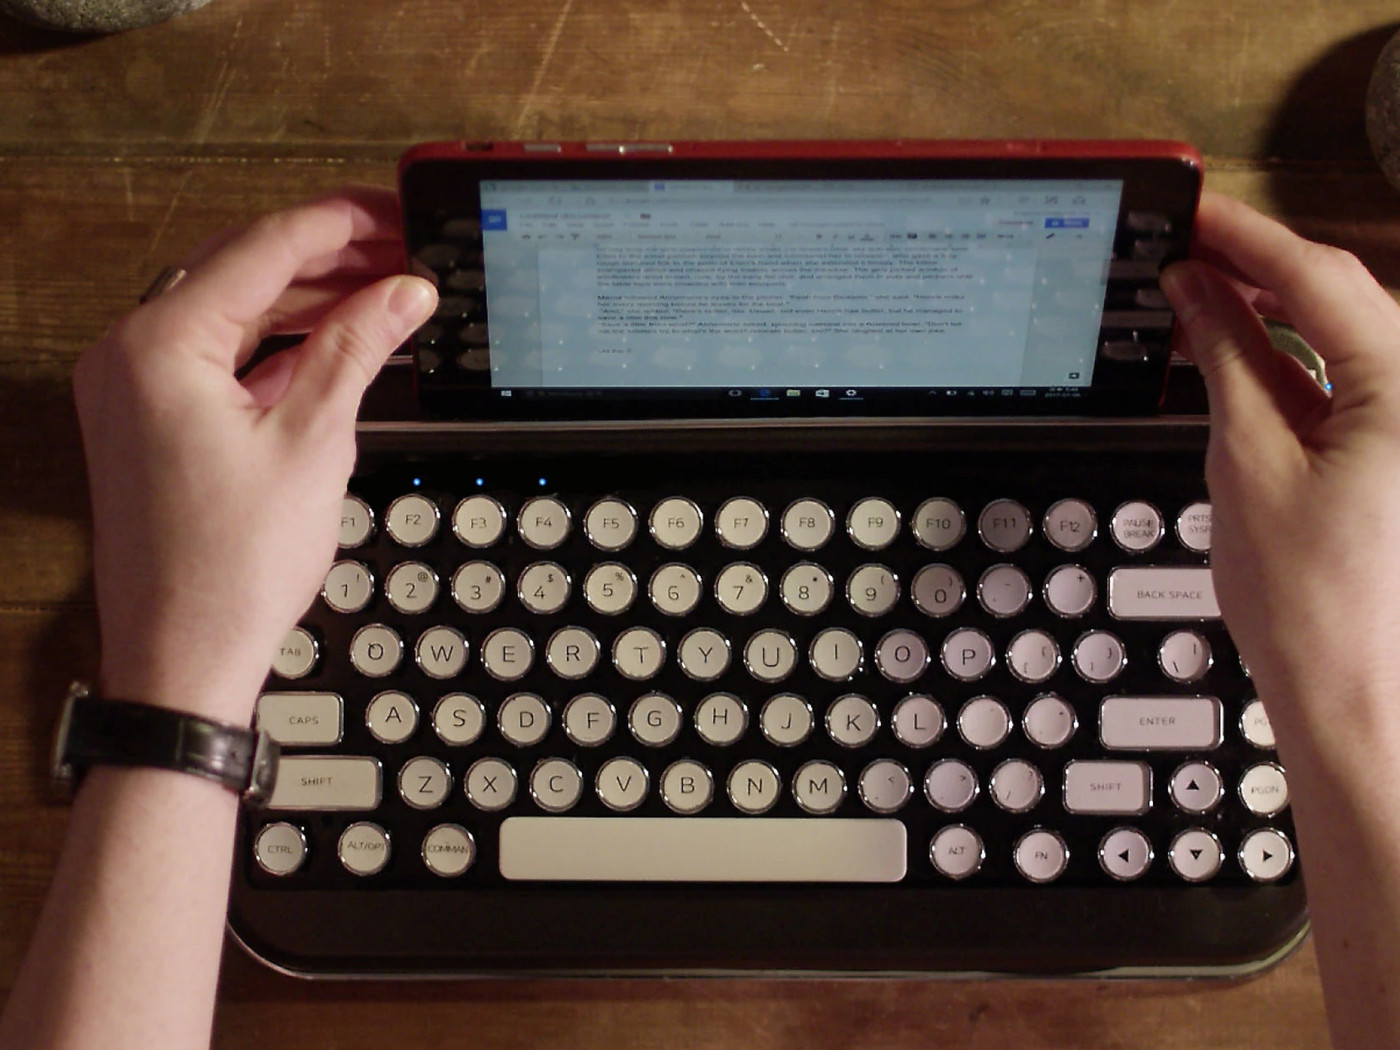 b4bfd5a2e5f This retro typewriter-style keyboard looks great - The Verge